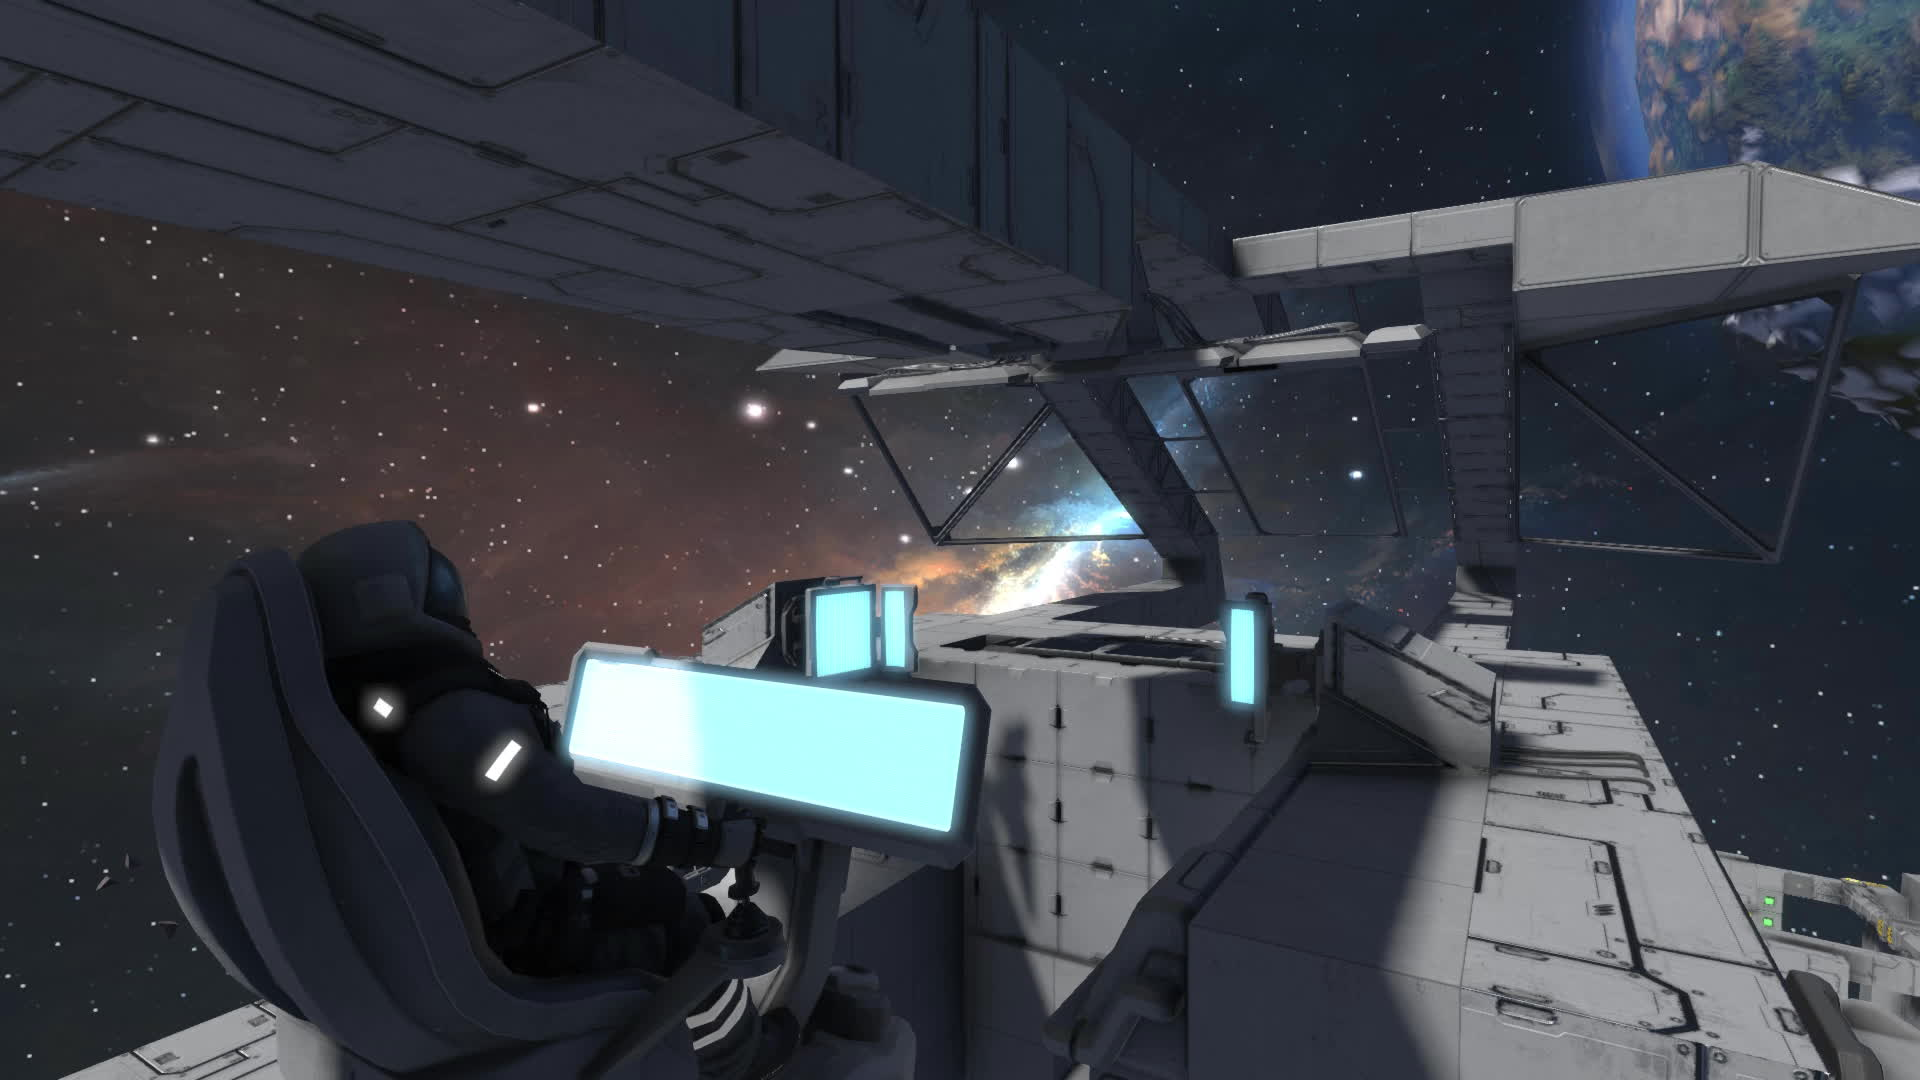 AskScienceFiction, spaceengineers, New cockpit GIFs